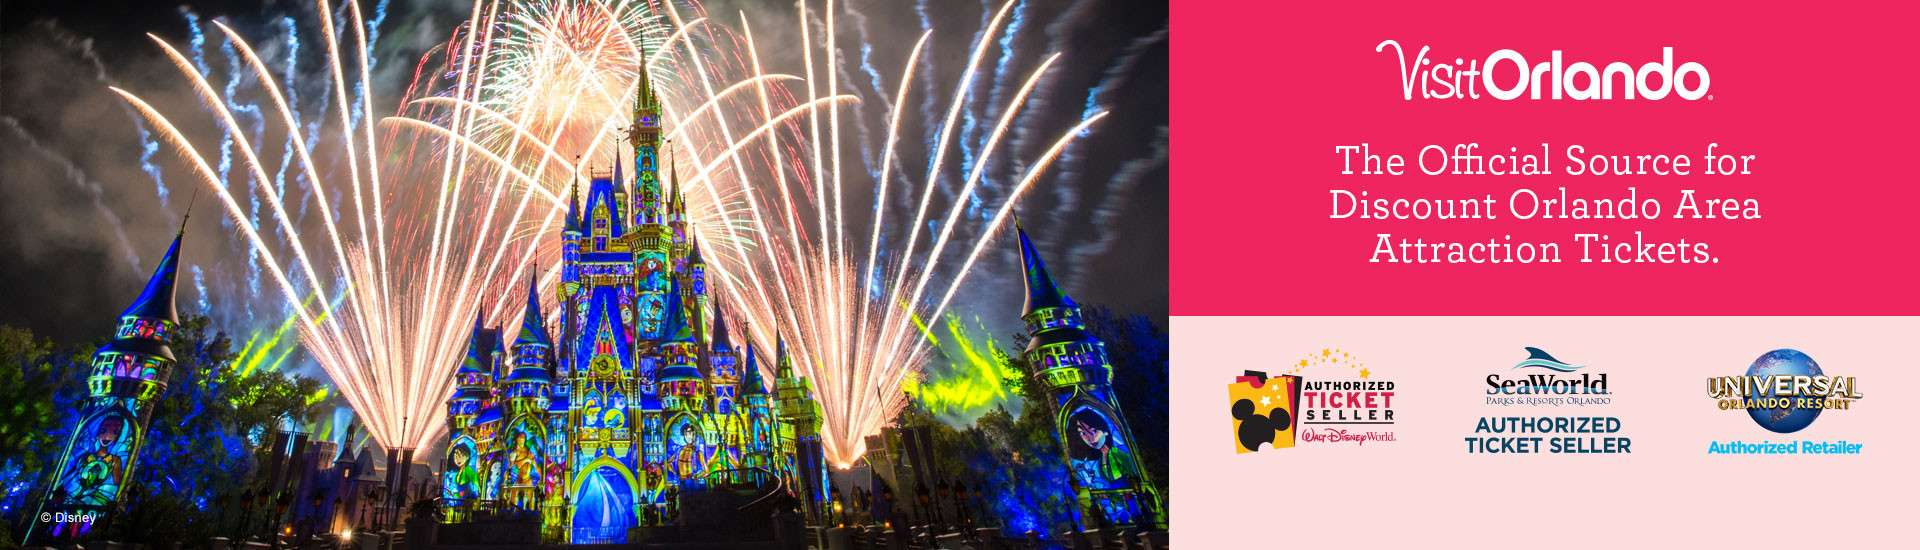 order online now and save up to 40 off gate prices on walt disney world resort